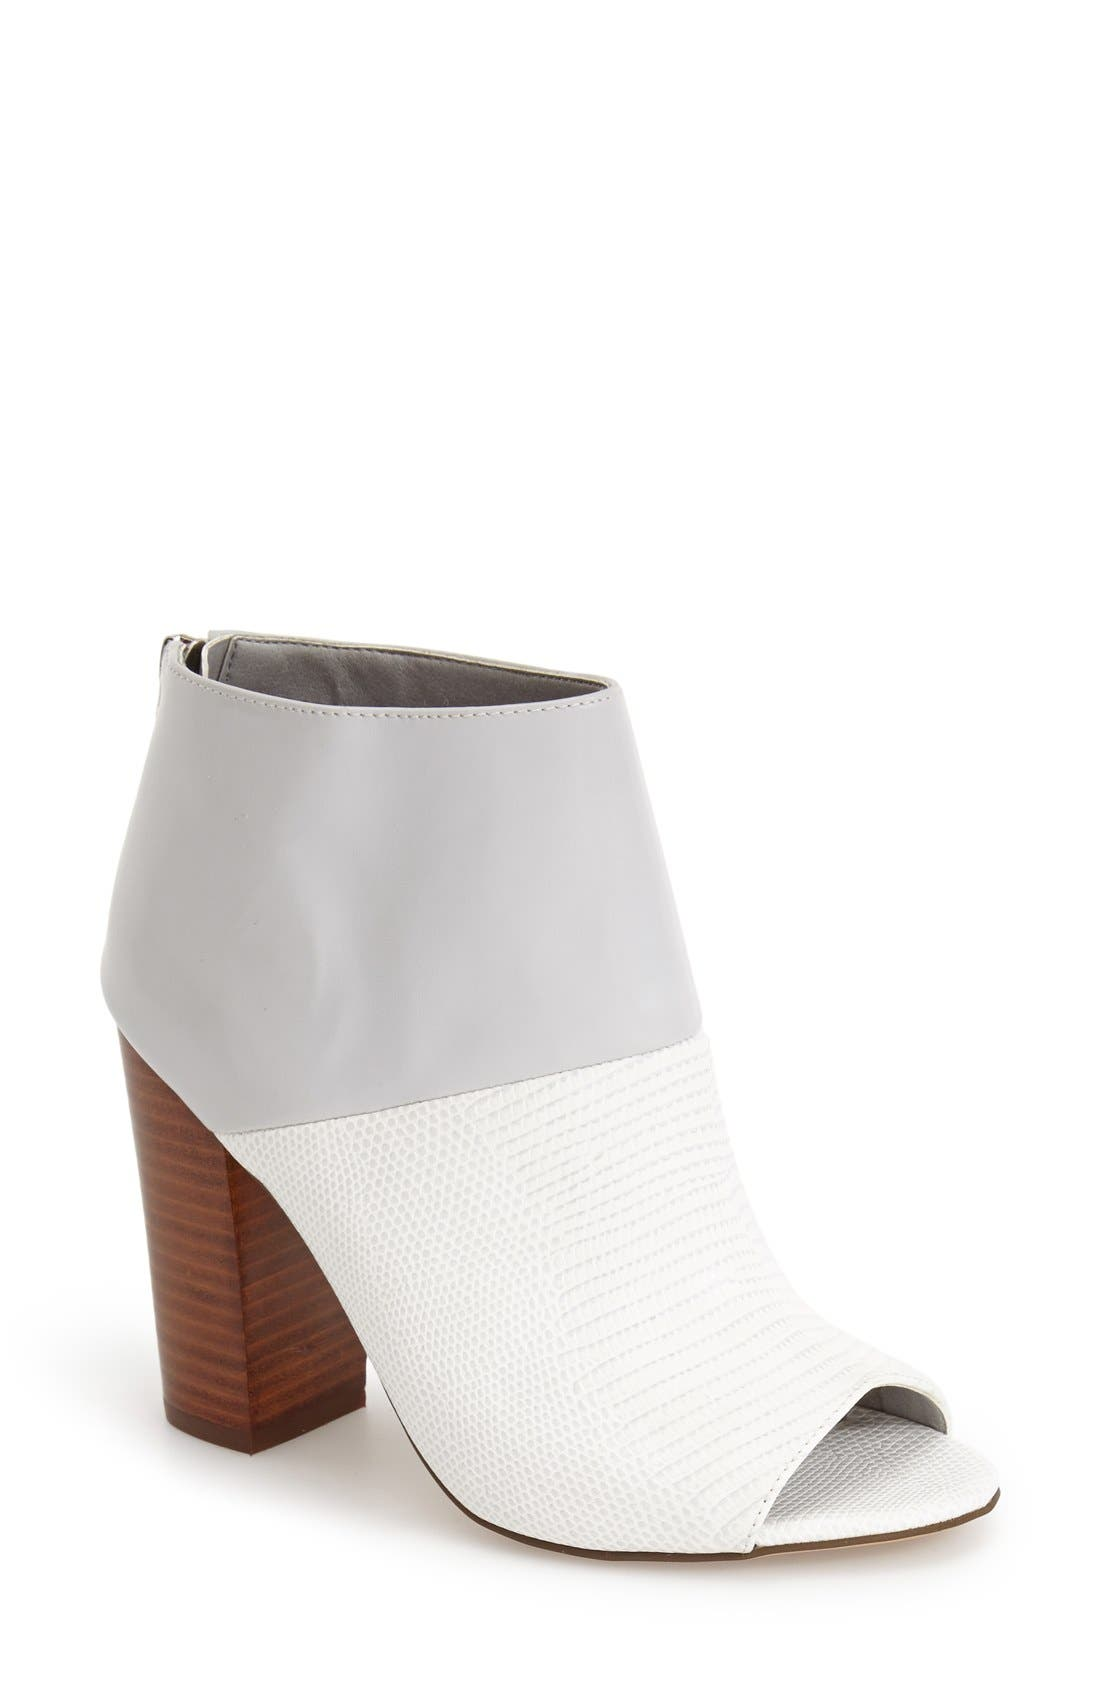 Main Image - Circus by Sam Edelman 'North' Peep Toe Ankle Bootie (Women)